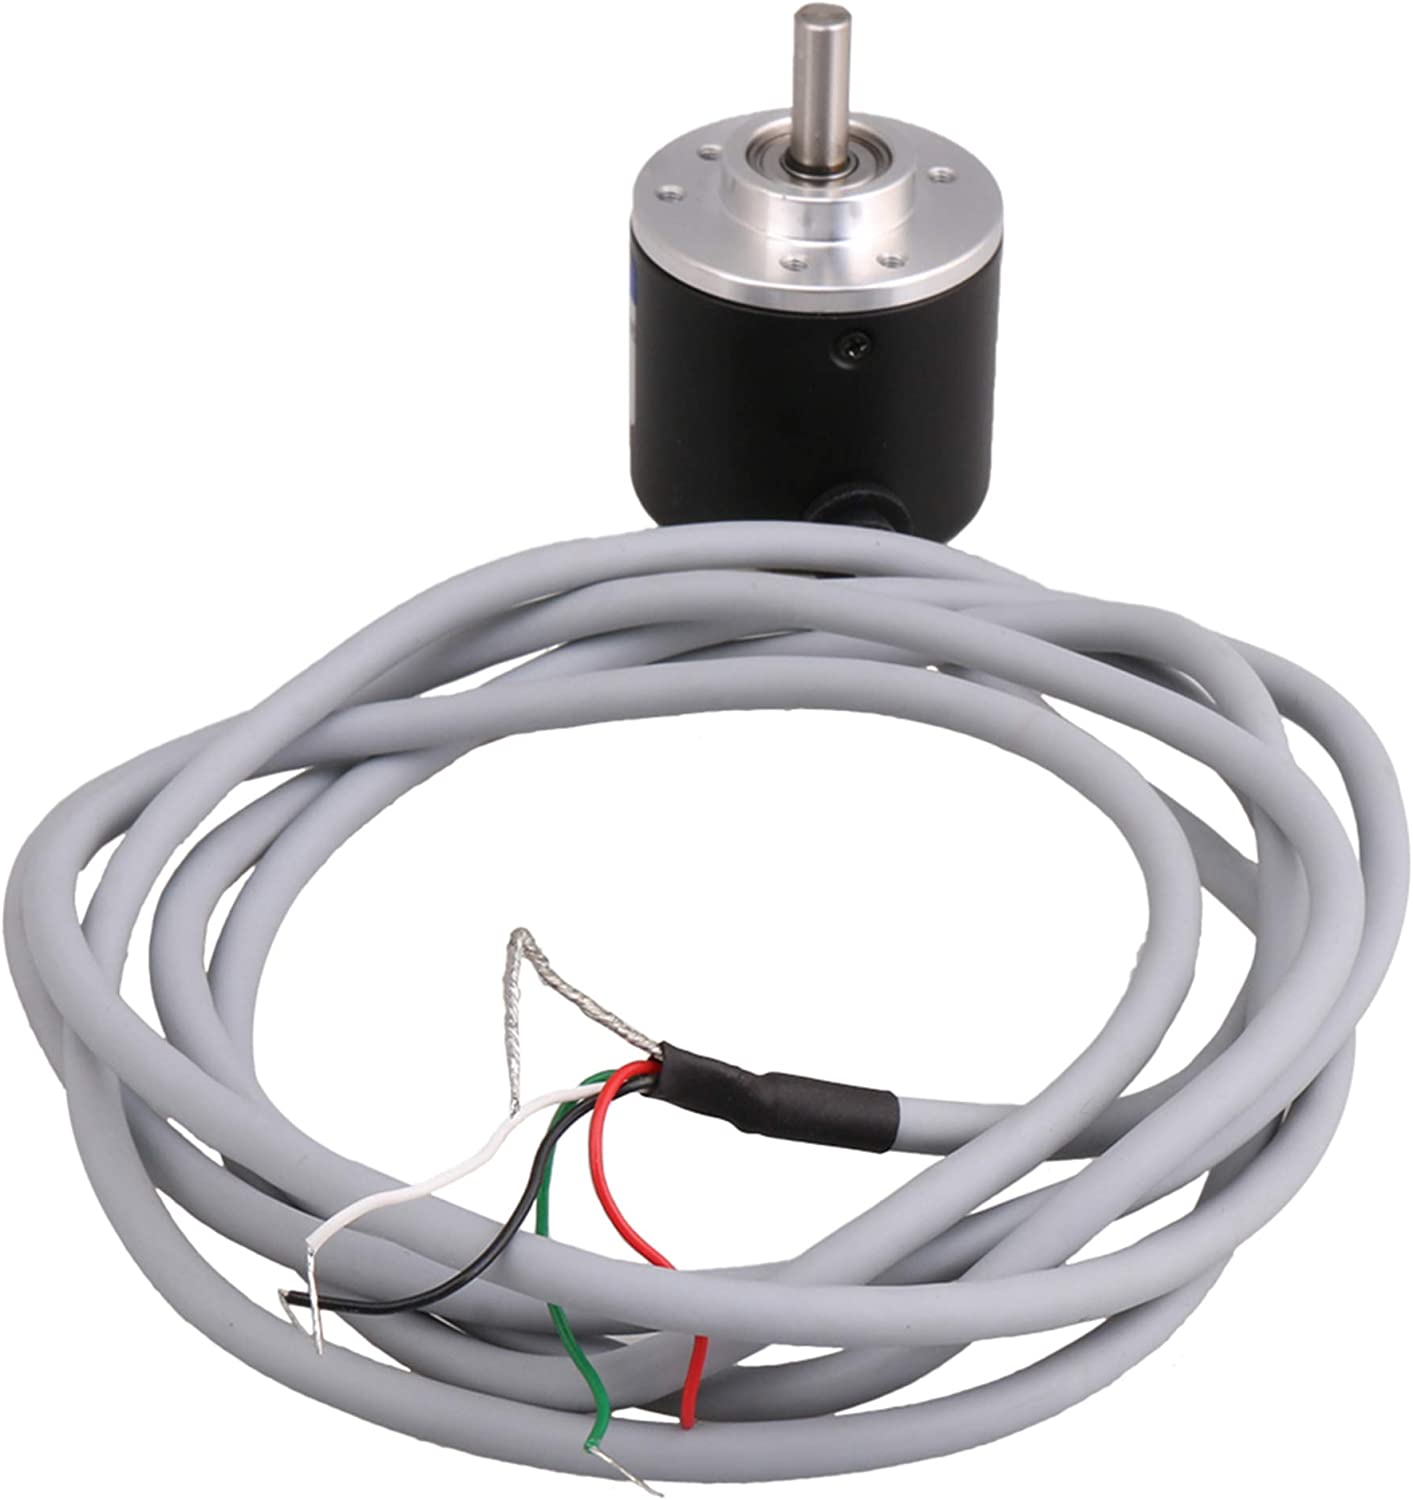 100B Solid Shaft Encoder Stable Aluminum 30Khz 5‑24V DC Durable Compact for 3000-6000 Rpm Office AB Two‑Phase Incremental Encoder